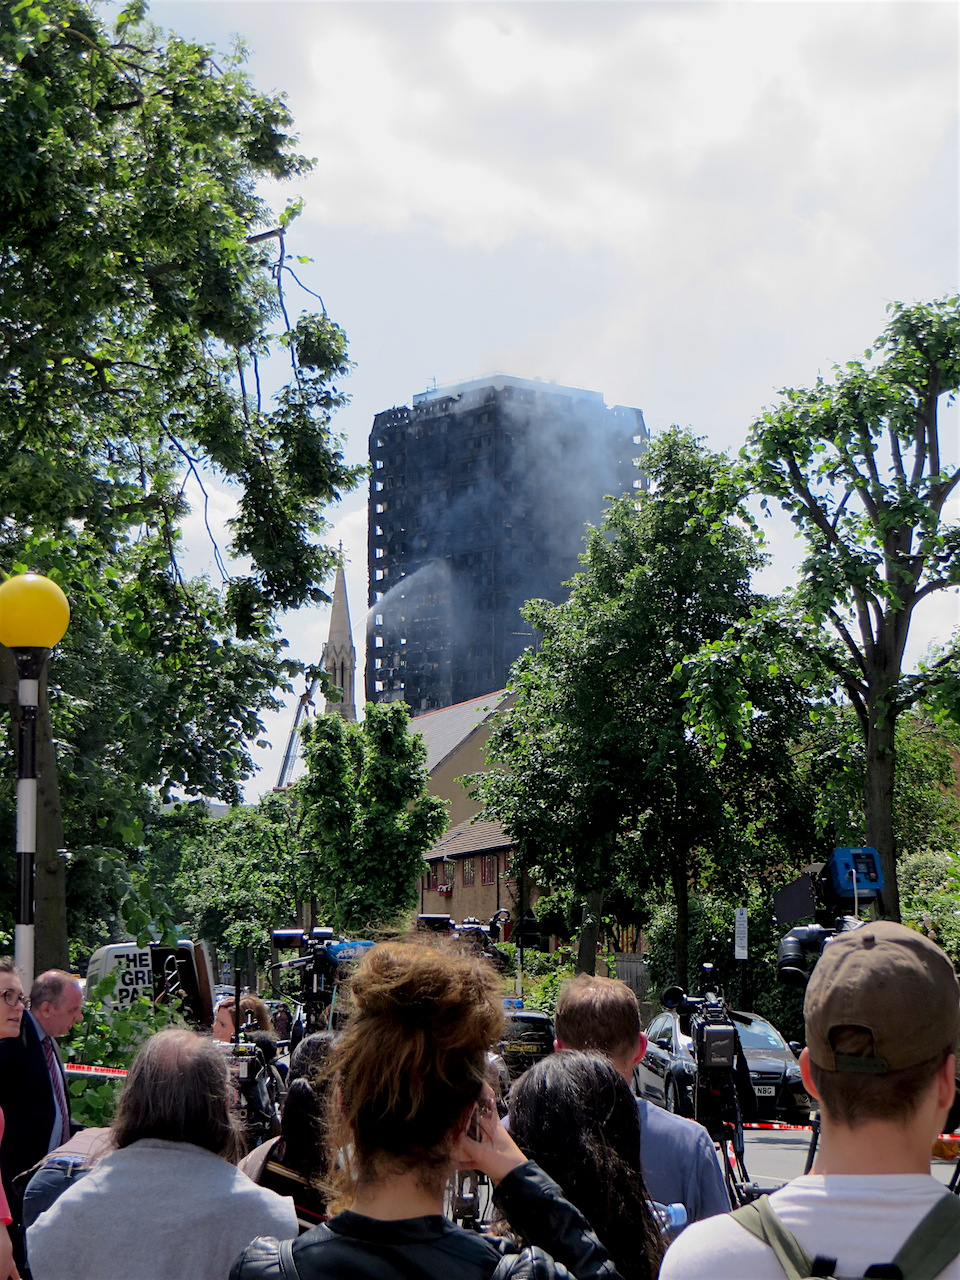 Grenfell Tower, photographed on the afternoon of June 14, 2017, about 12 hours after the inferno began (Photo: Andy Worthington).